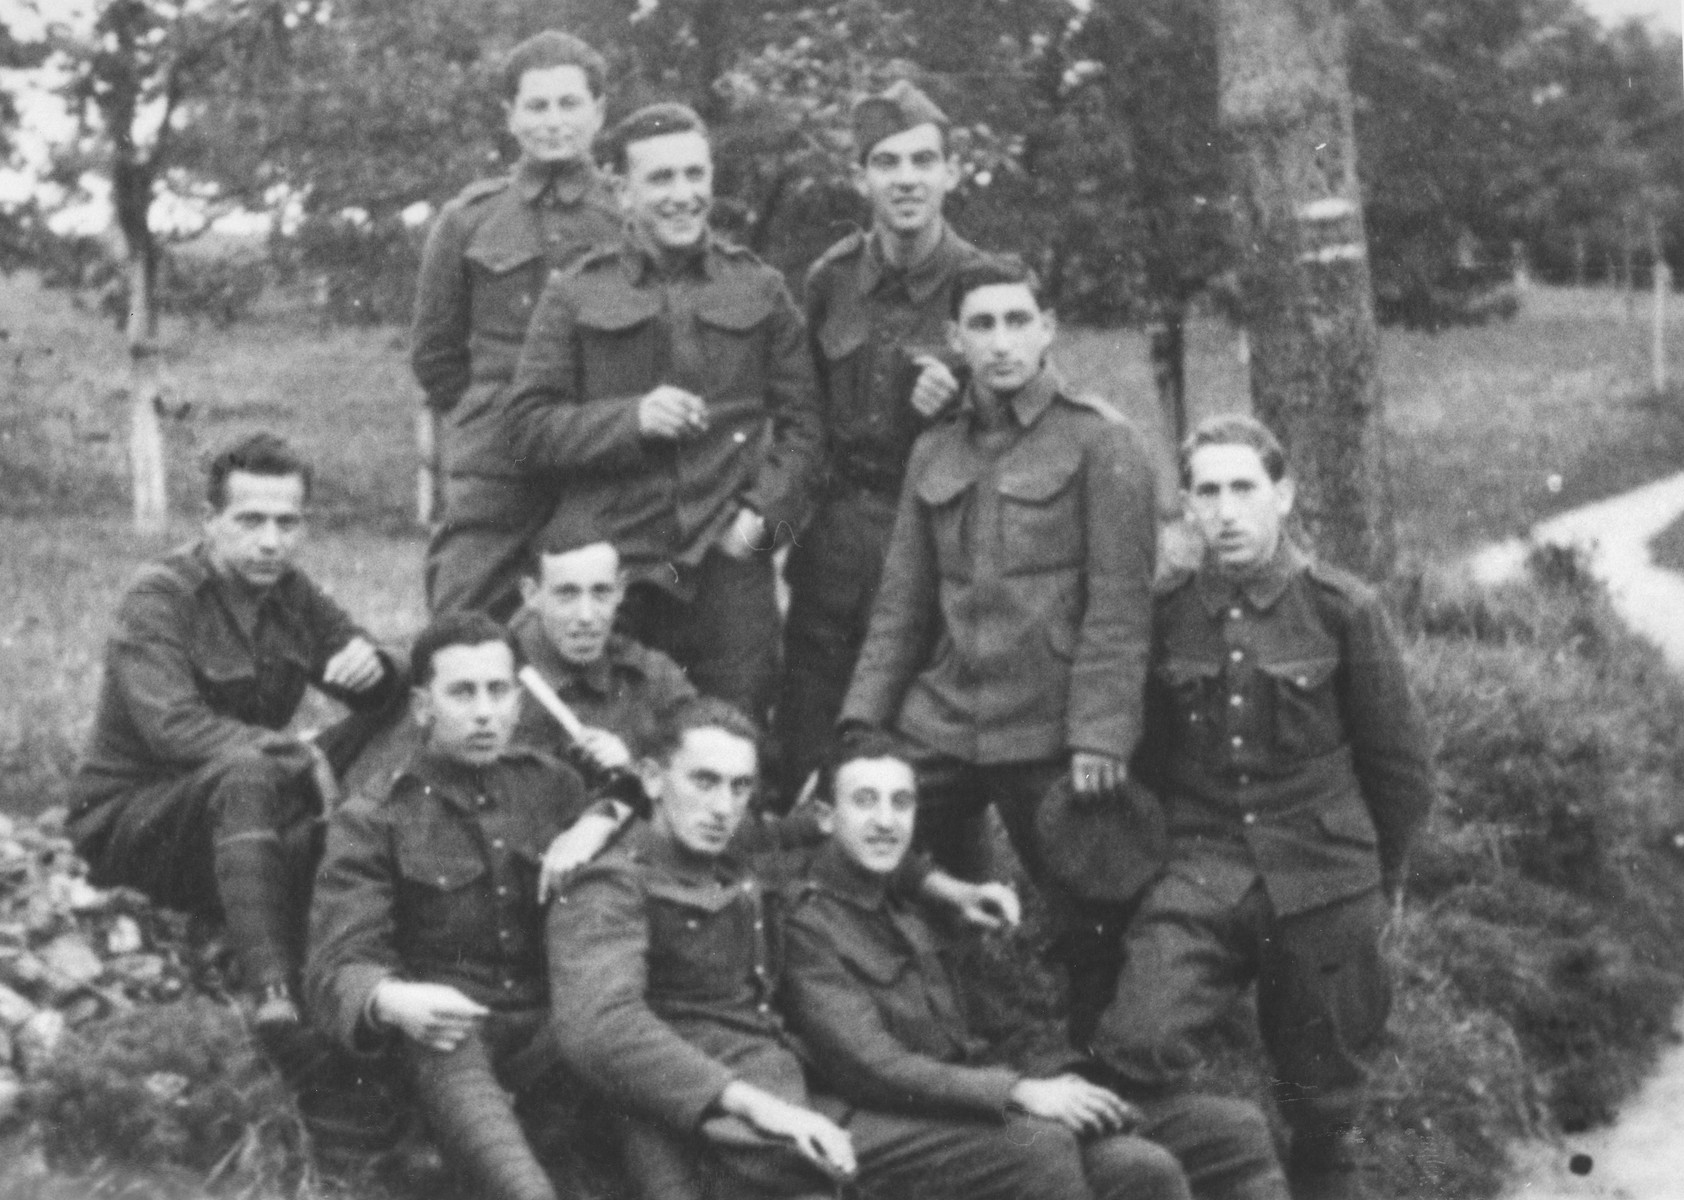 Group portrait of Jewish members of the Sixth Labor Battalion (VI Prapor) at a Slovak labor camp.   Among those pictured is ? Brigler (standing, wearing hat), from Michlovc, Slovakia.